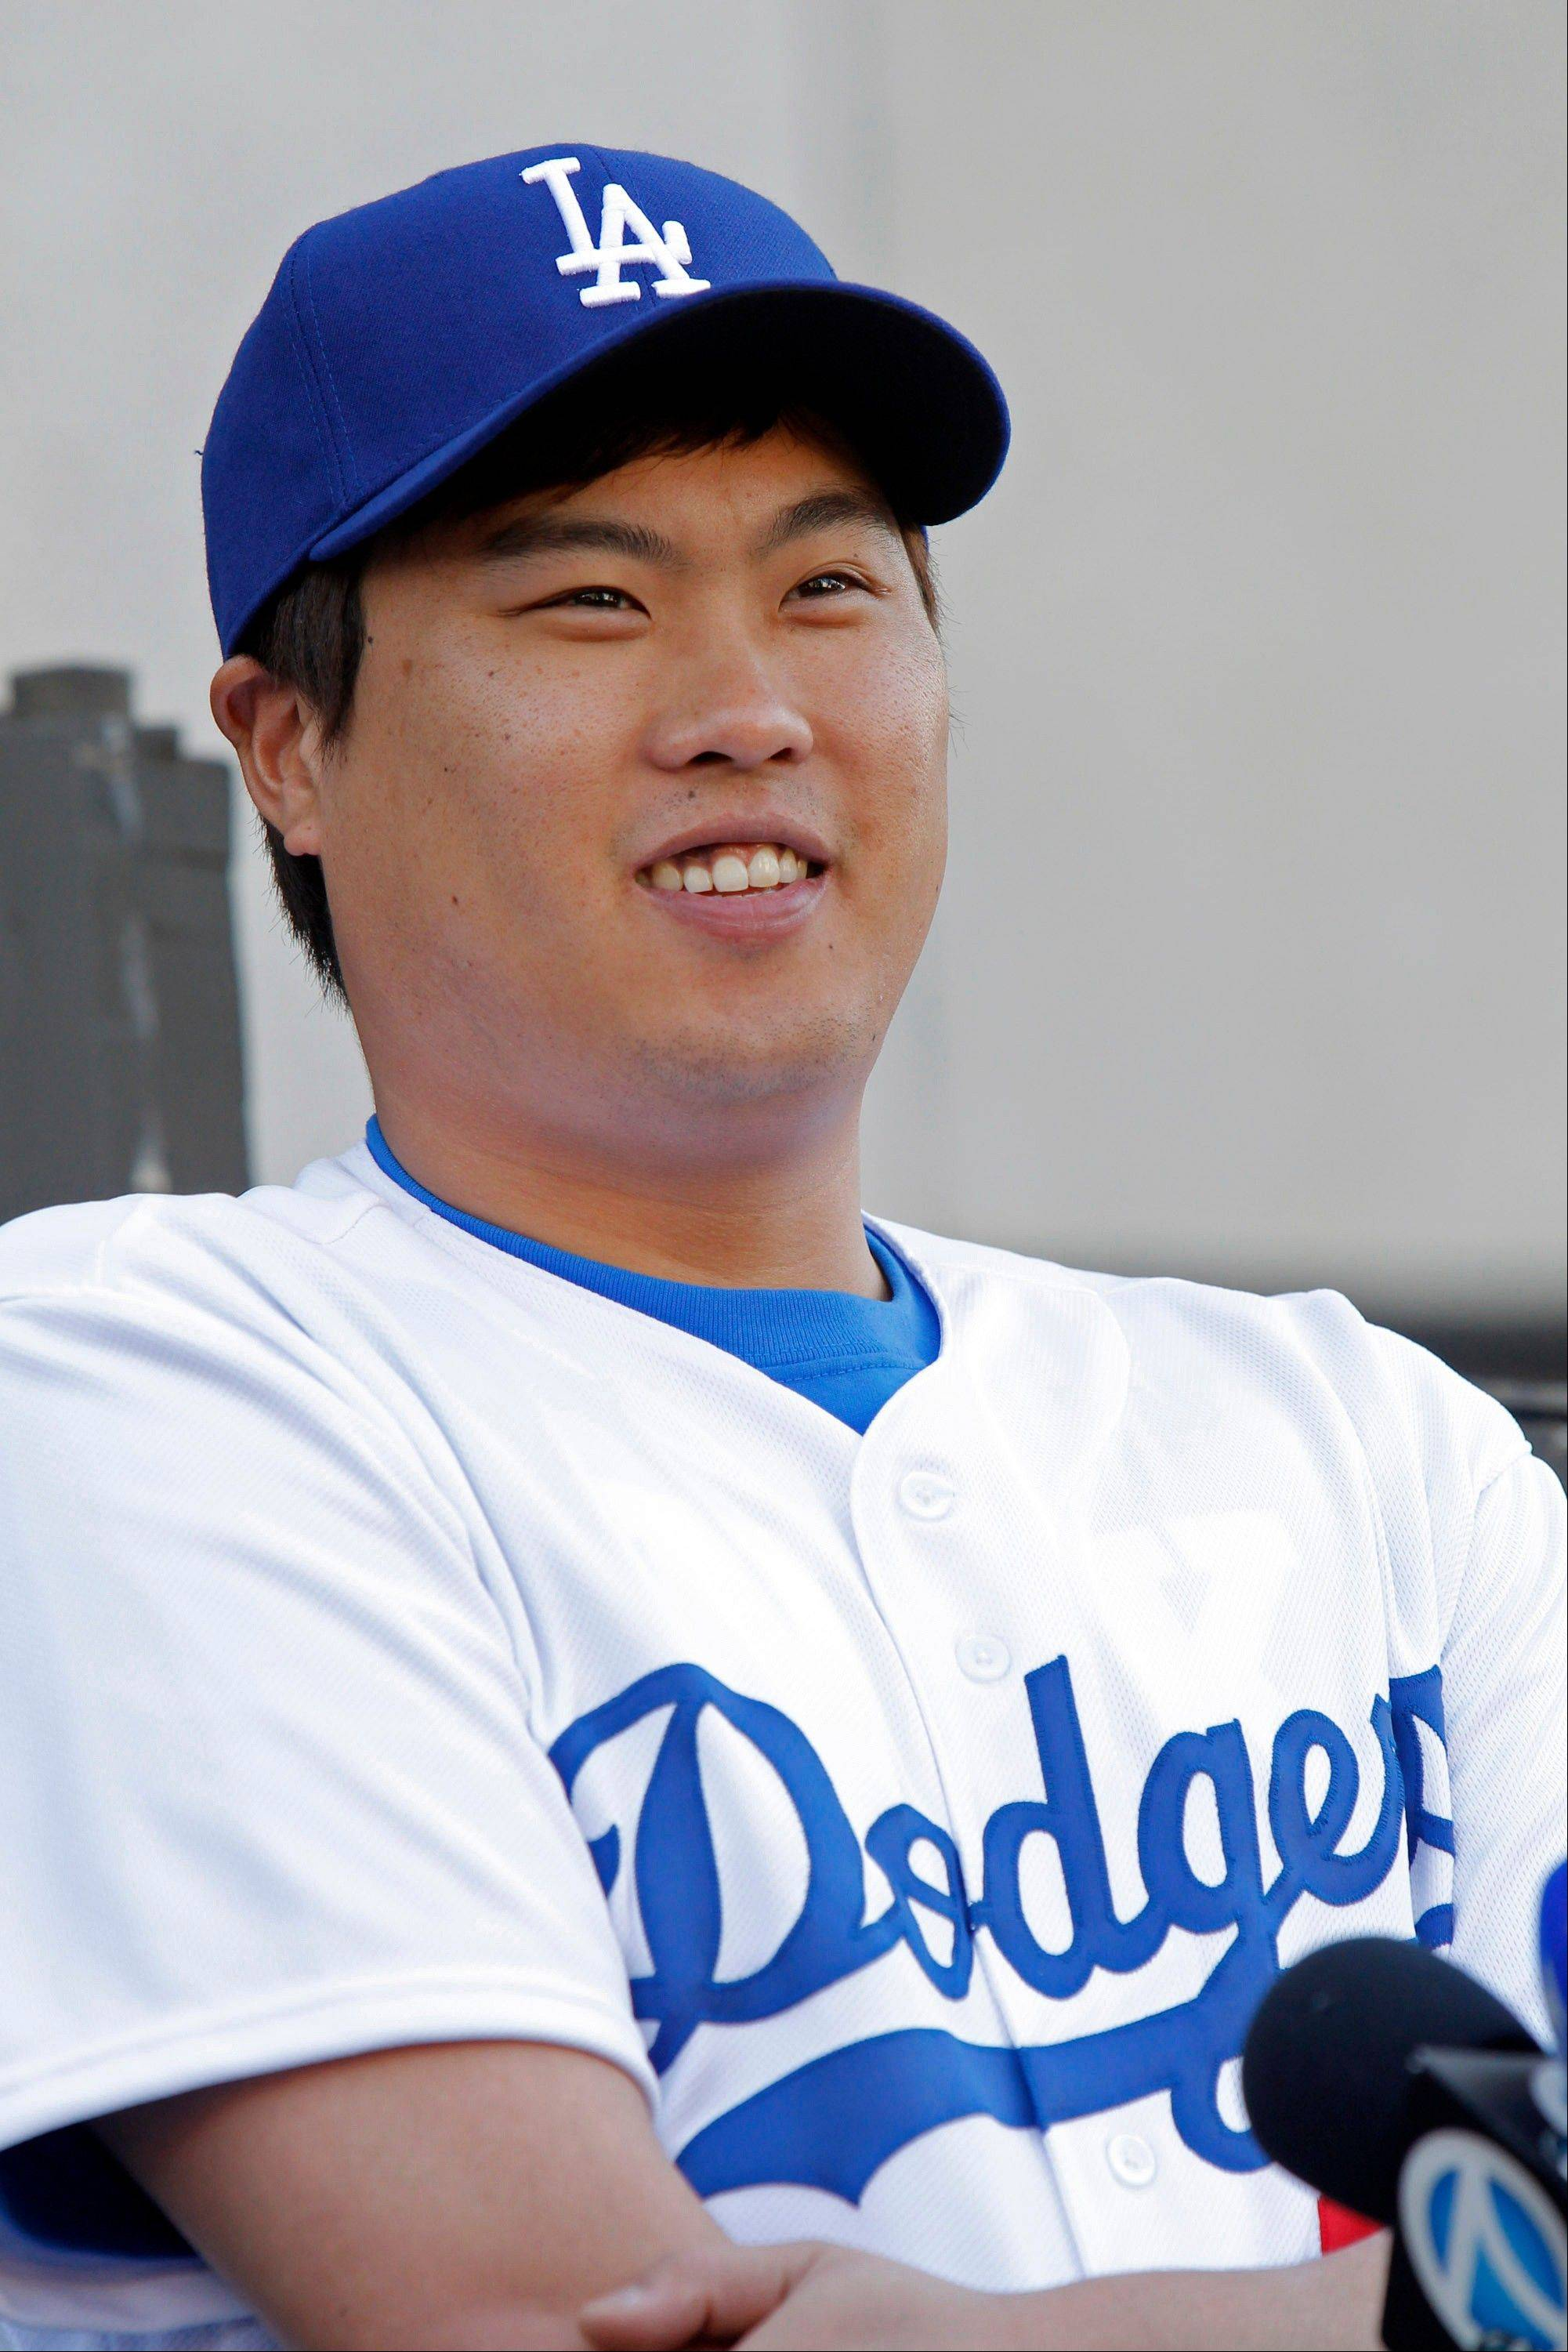 Los Angeles Dodgers left-handed pitcher Ryu Hyun-jin, of South Korea, signed a six-year, $36 million deal with the team.